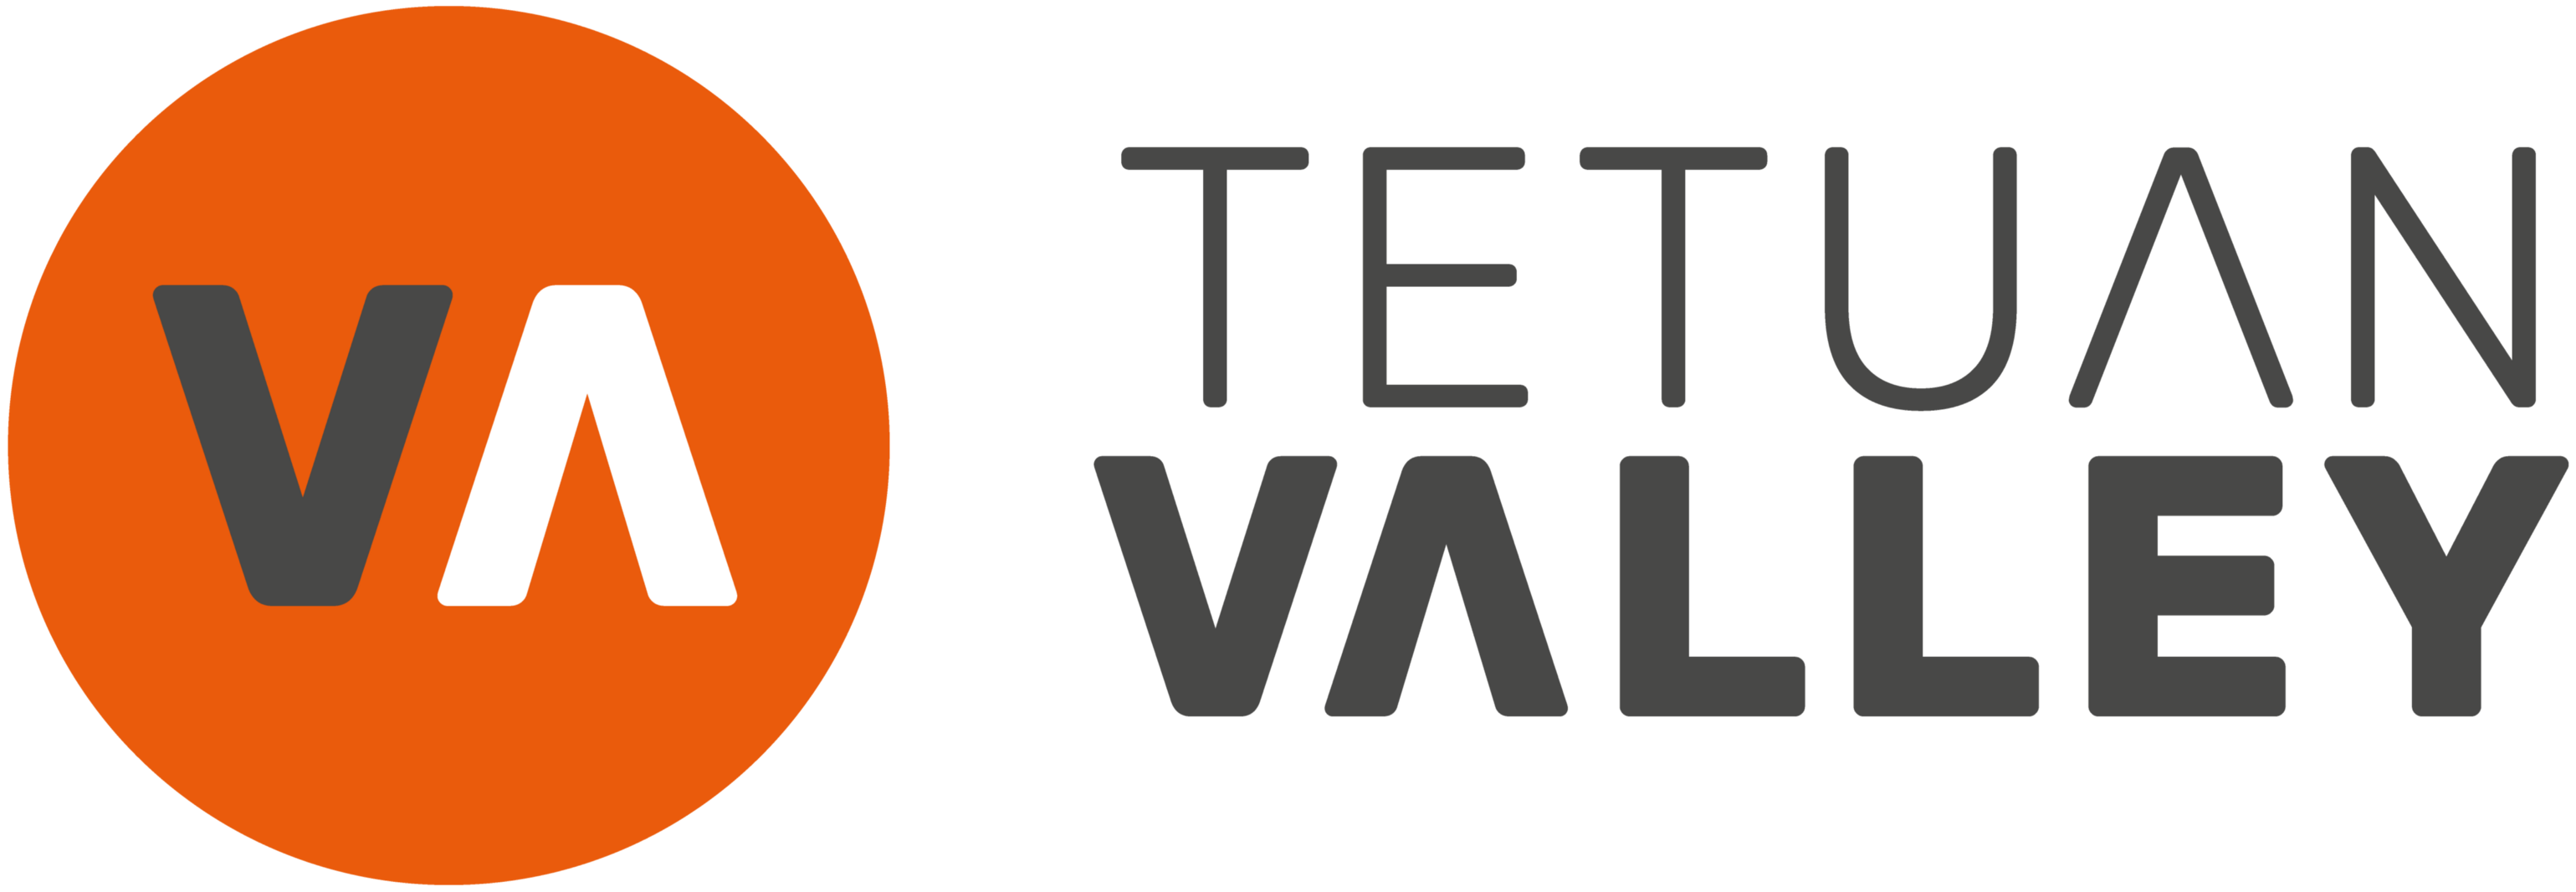 Logo Tetuan Valley